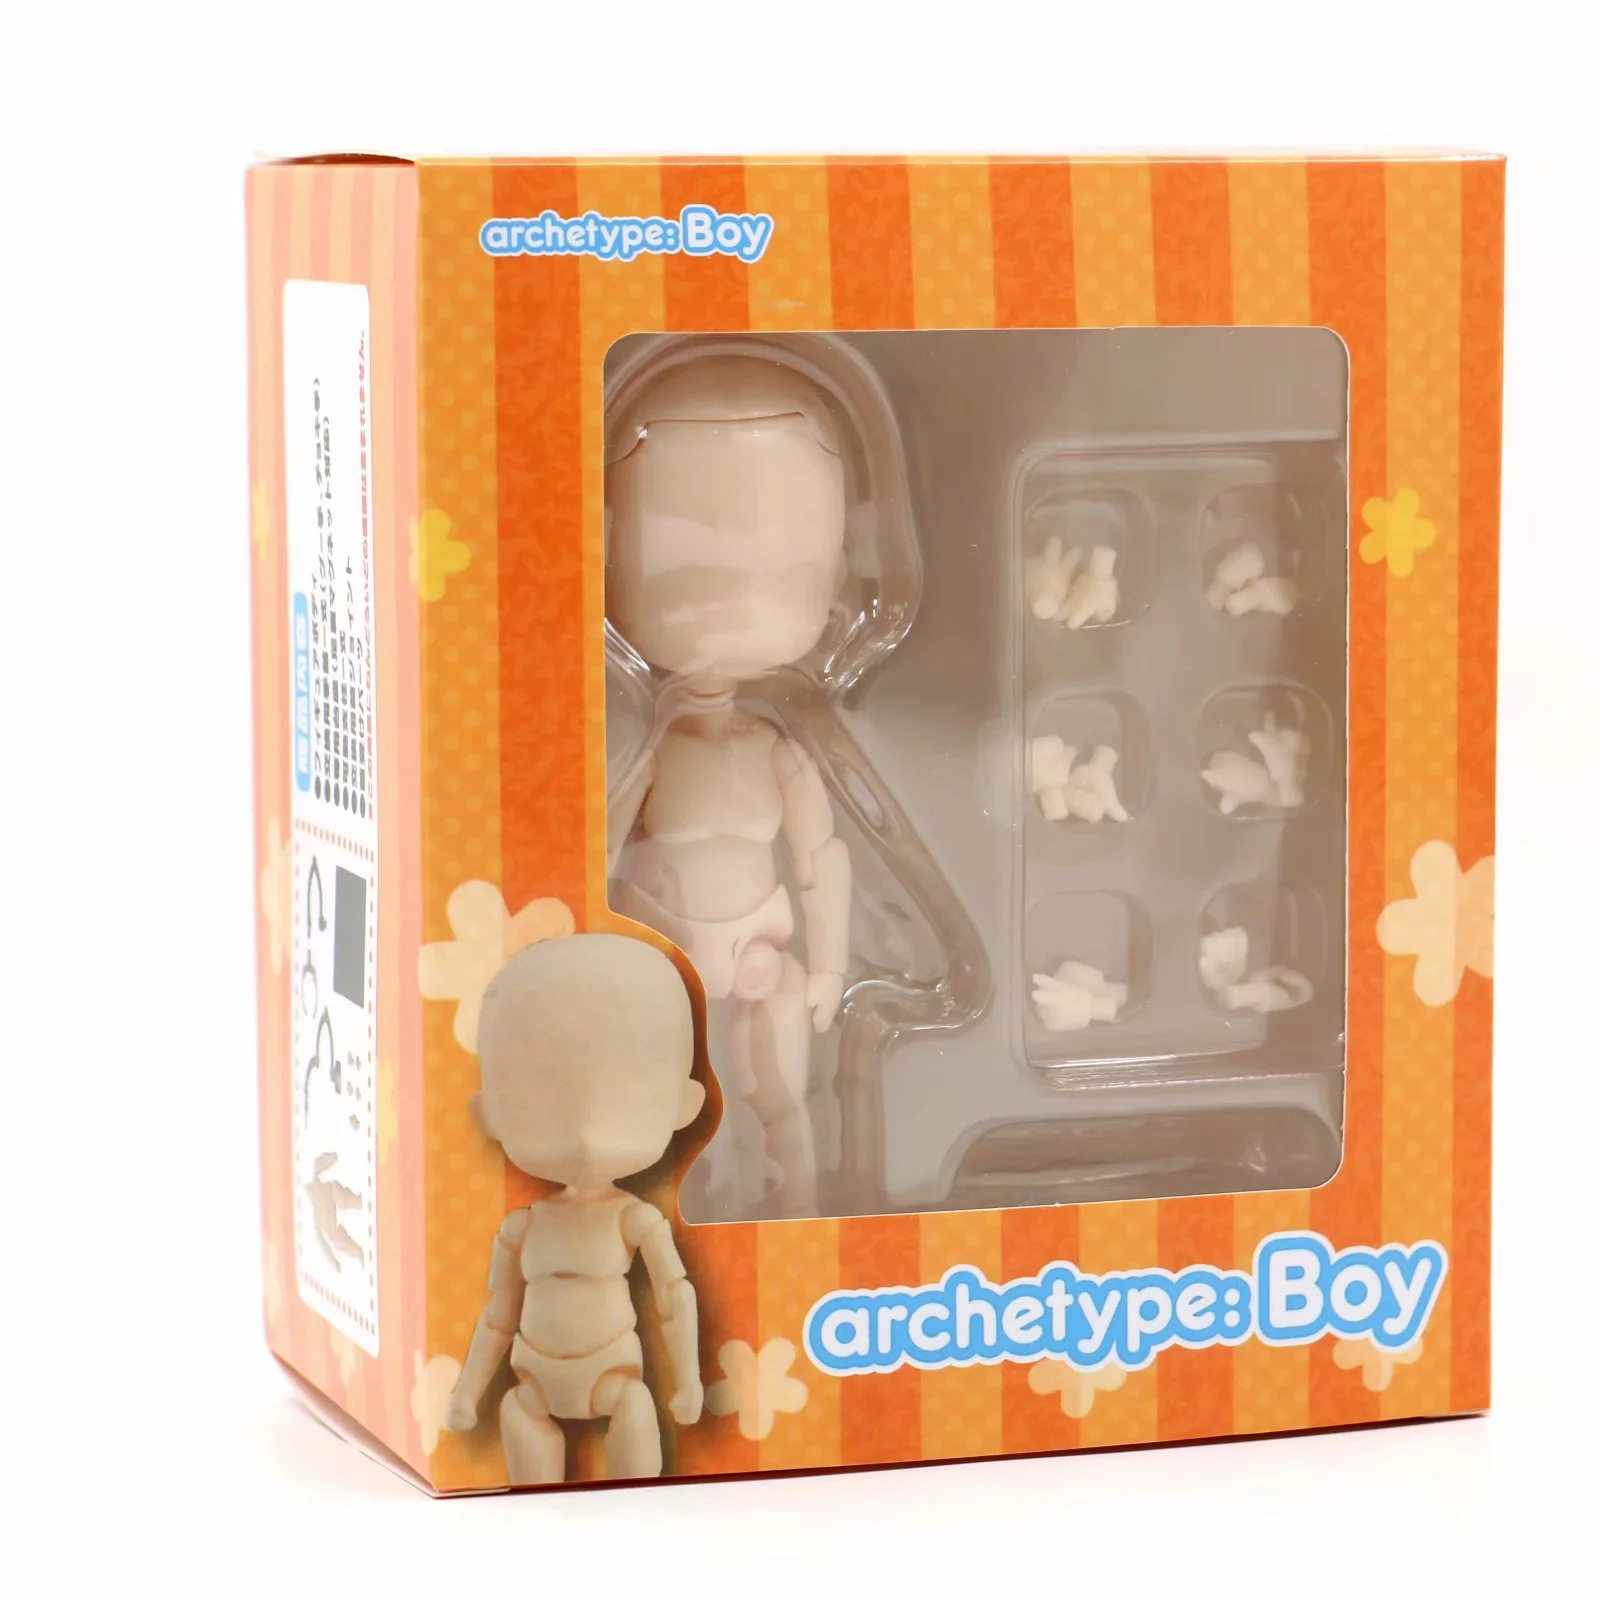 Japan GSC Nendoroid Child Body Kun Boy Movable Action Figure Collectible Model Toy With Base And Head